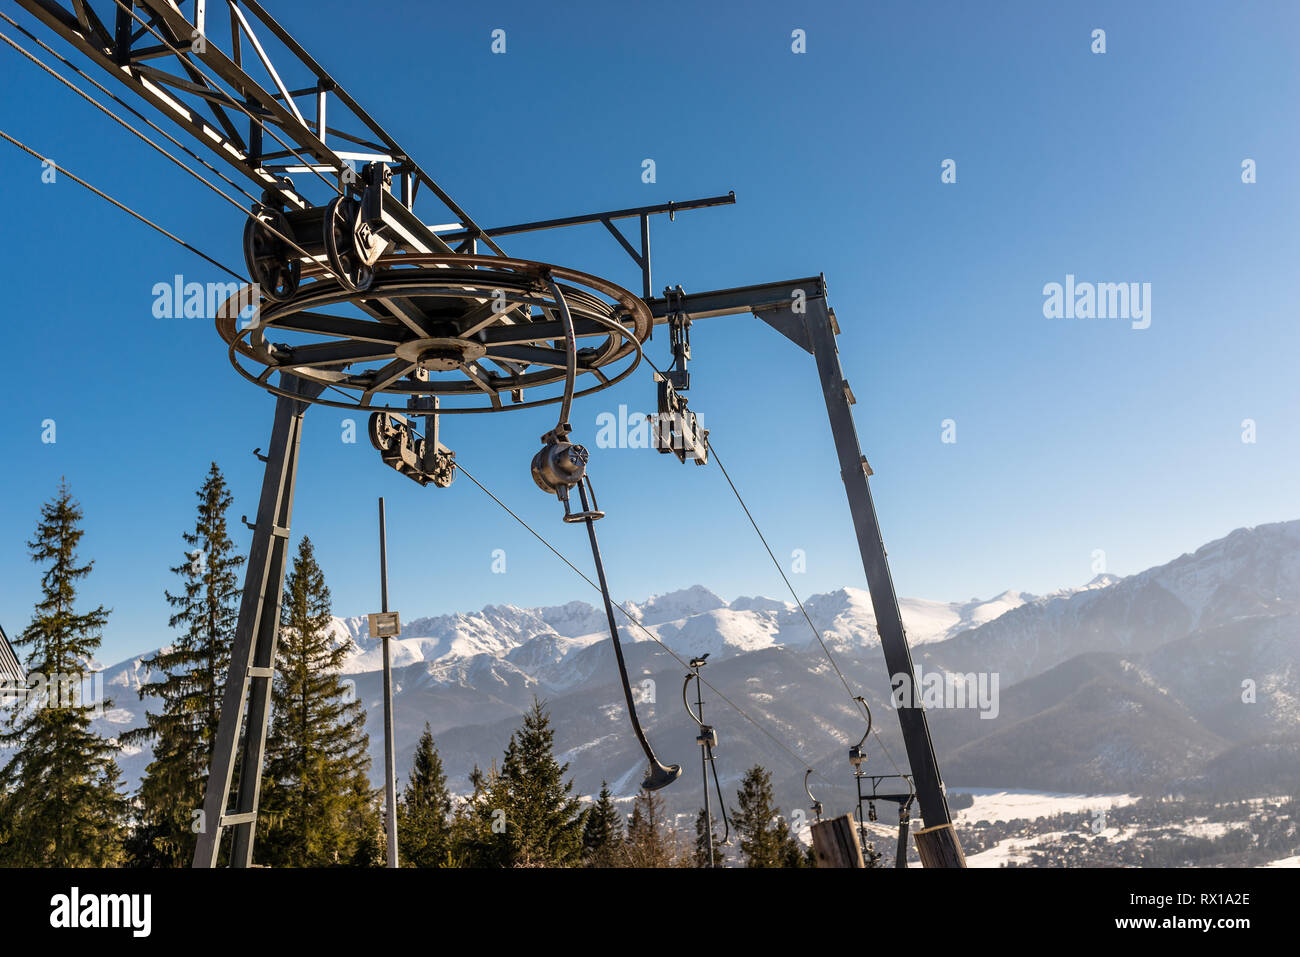 The mechanism of the ski lift, visible large, driving wheel pulling the rope and suspended chairs in the background Tatra Mountains and trees. - Stock Image